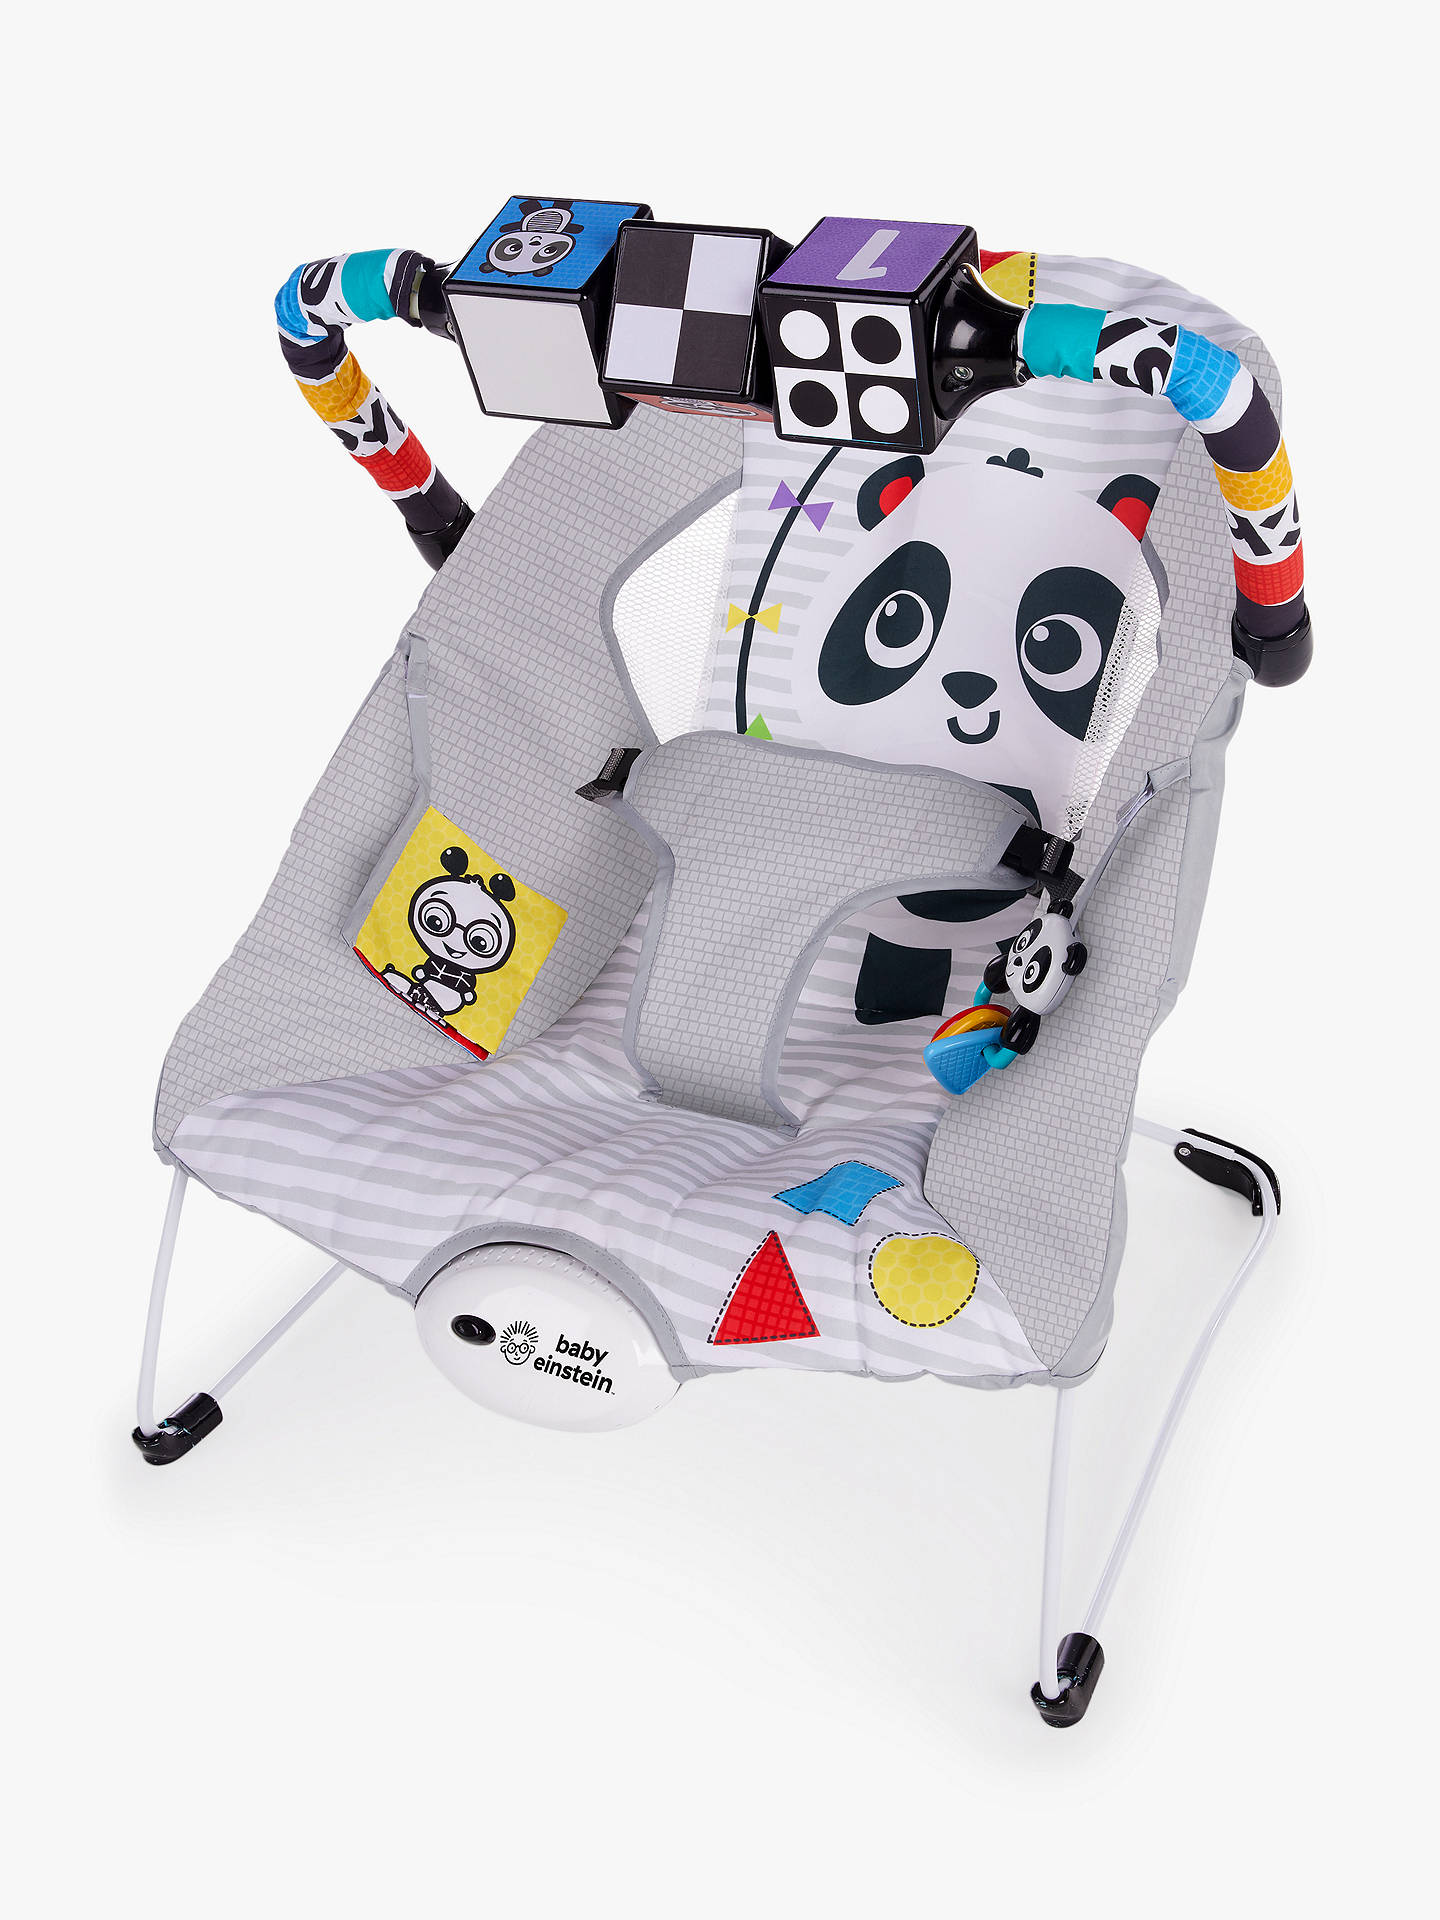 cb535a98240f Baby Einstein Black White and Bright Bouncer at John Lewis   Partners